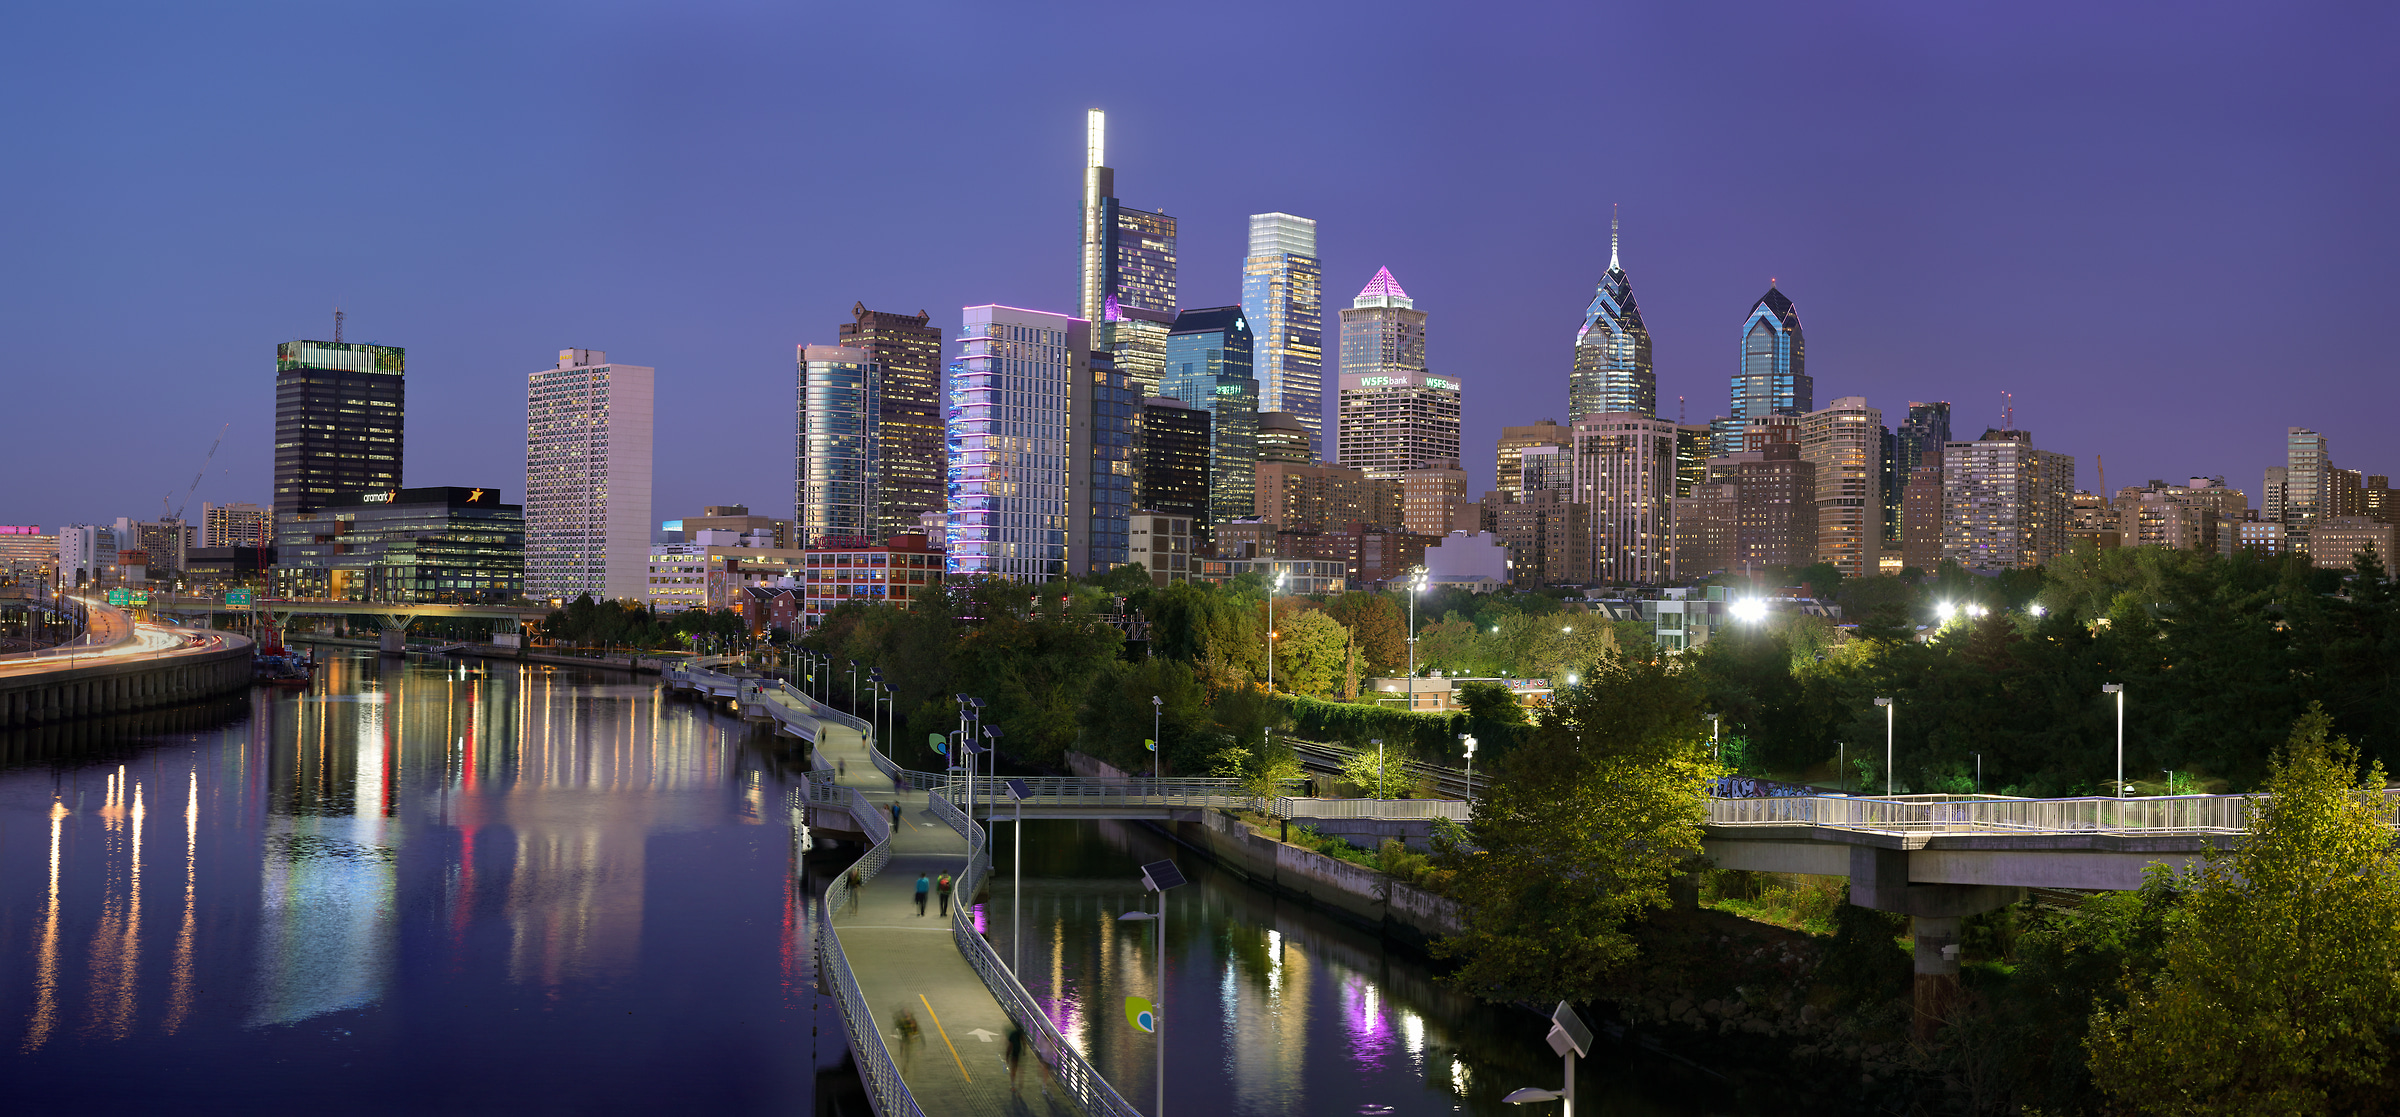 612 megapixels! A very high resolution, large-format VAST photo print of the Philadelphia skyline at dusk; cityscape photograph created by Phil Crawshay in Philadelphia, PA